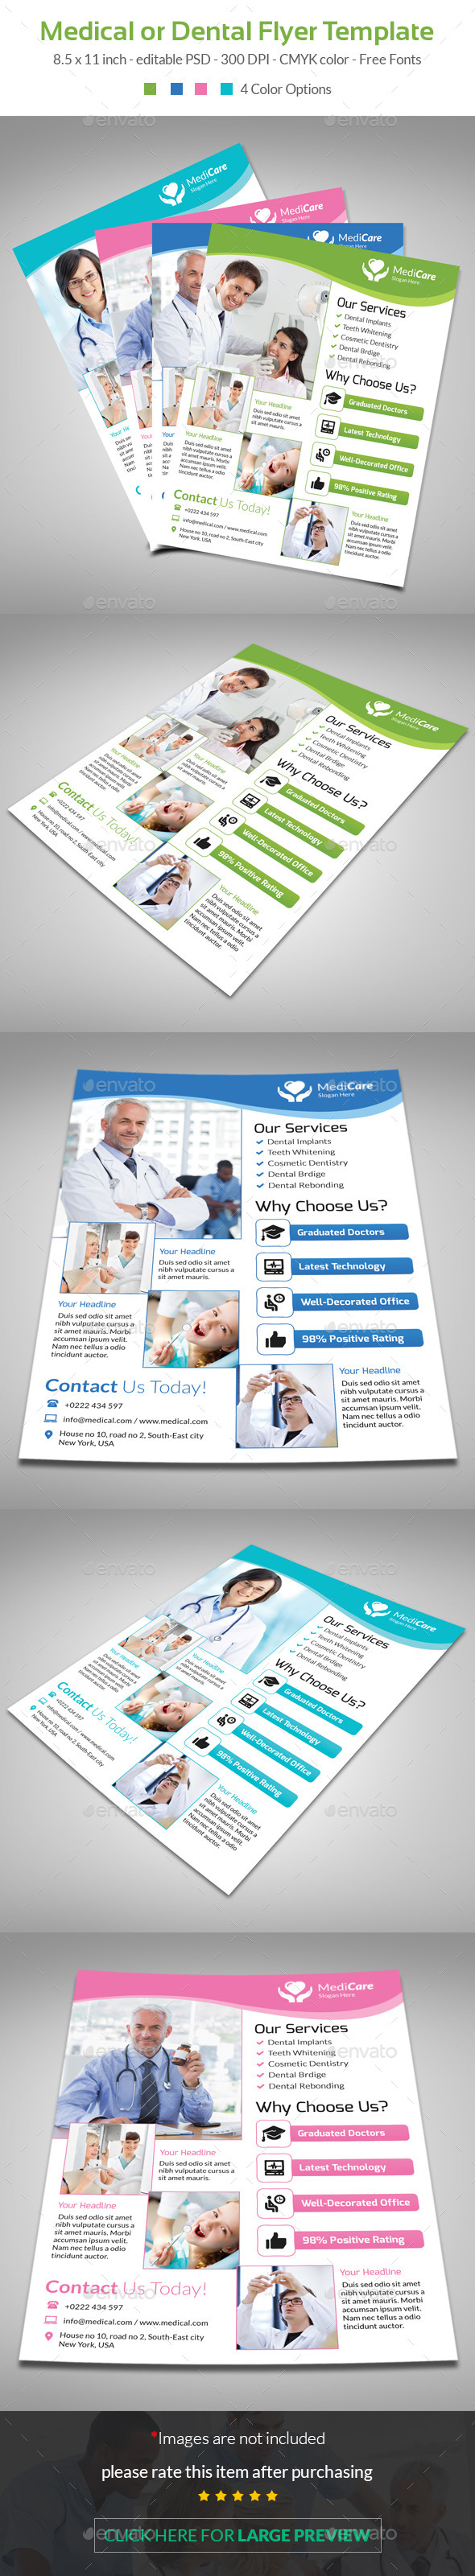 GraphicRiver Medical Dental Flyer Template 10257779